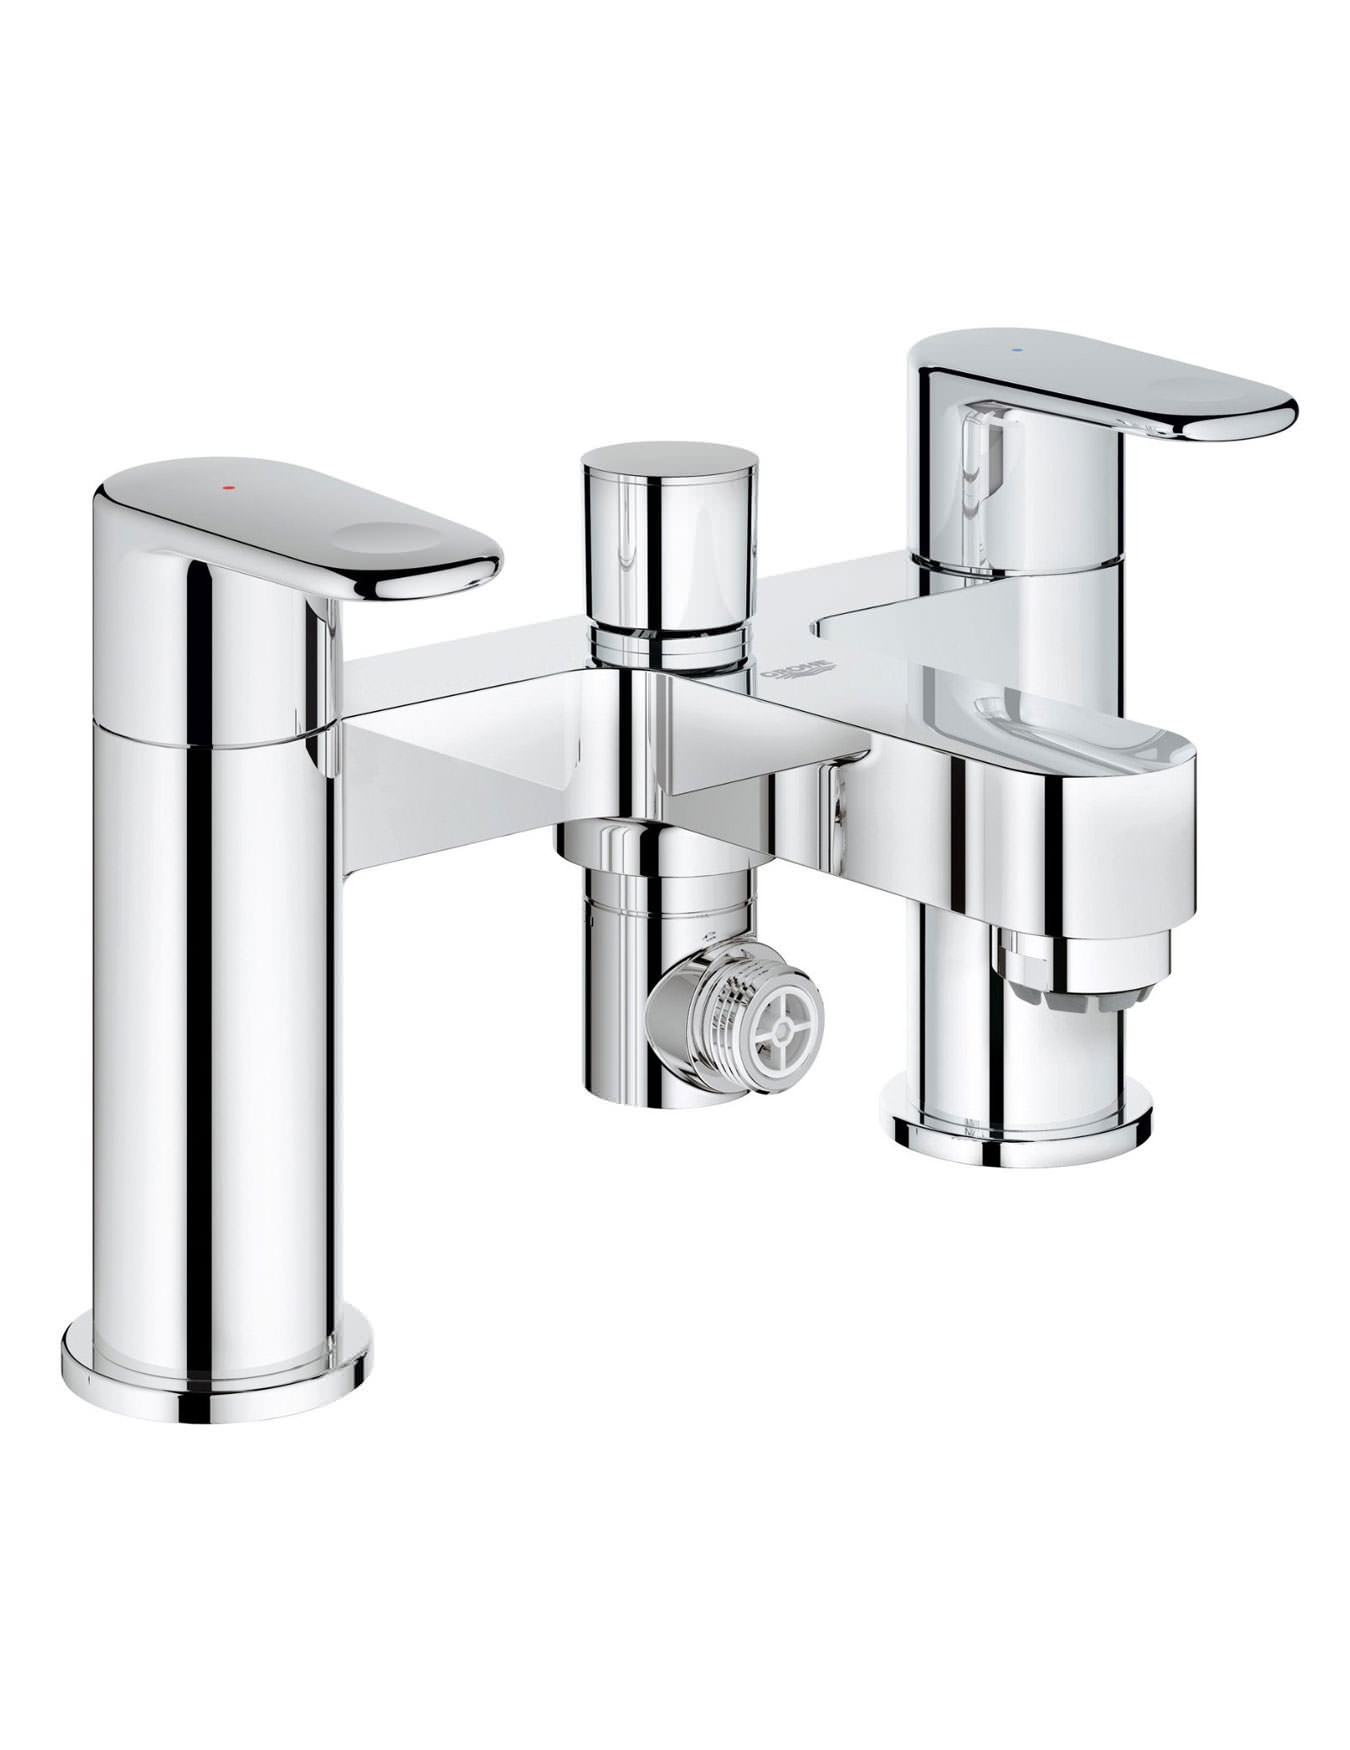 Europlus Deck Mounted Bath Shower Mixer Tap Chrome